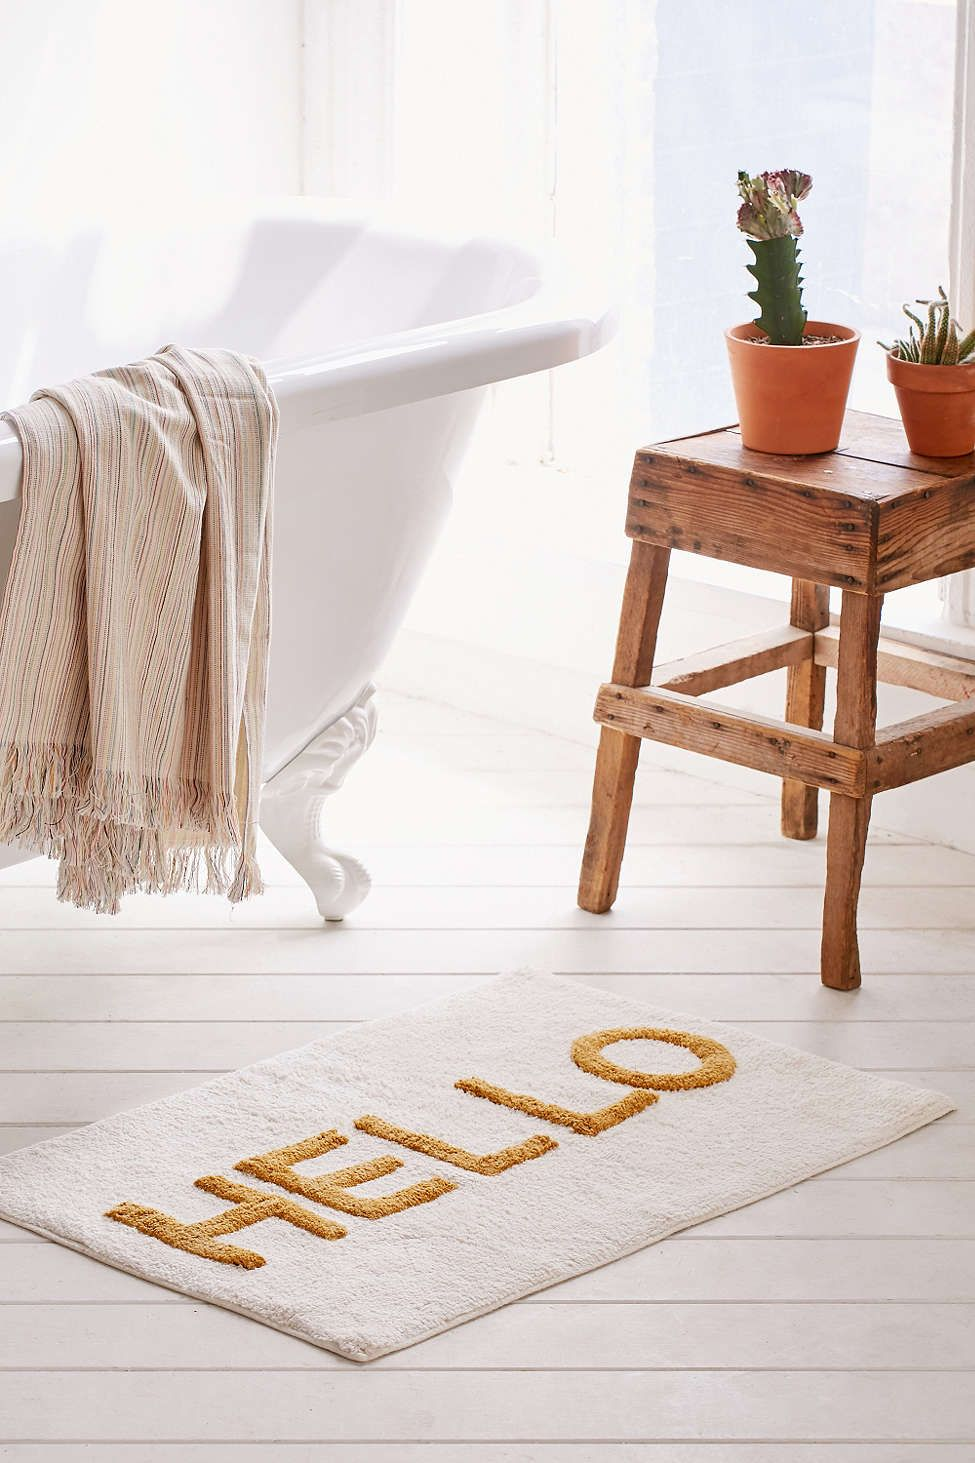 inside and mat instagram bath urbanoutfitters good boho outfitters nice look urban regard on with bathroom you to simple